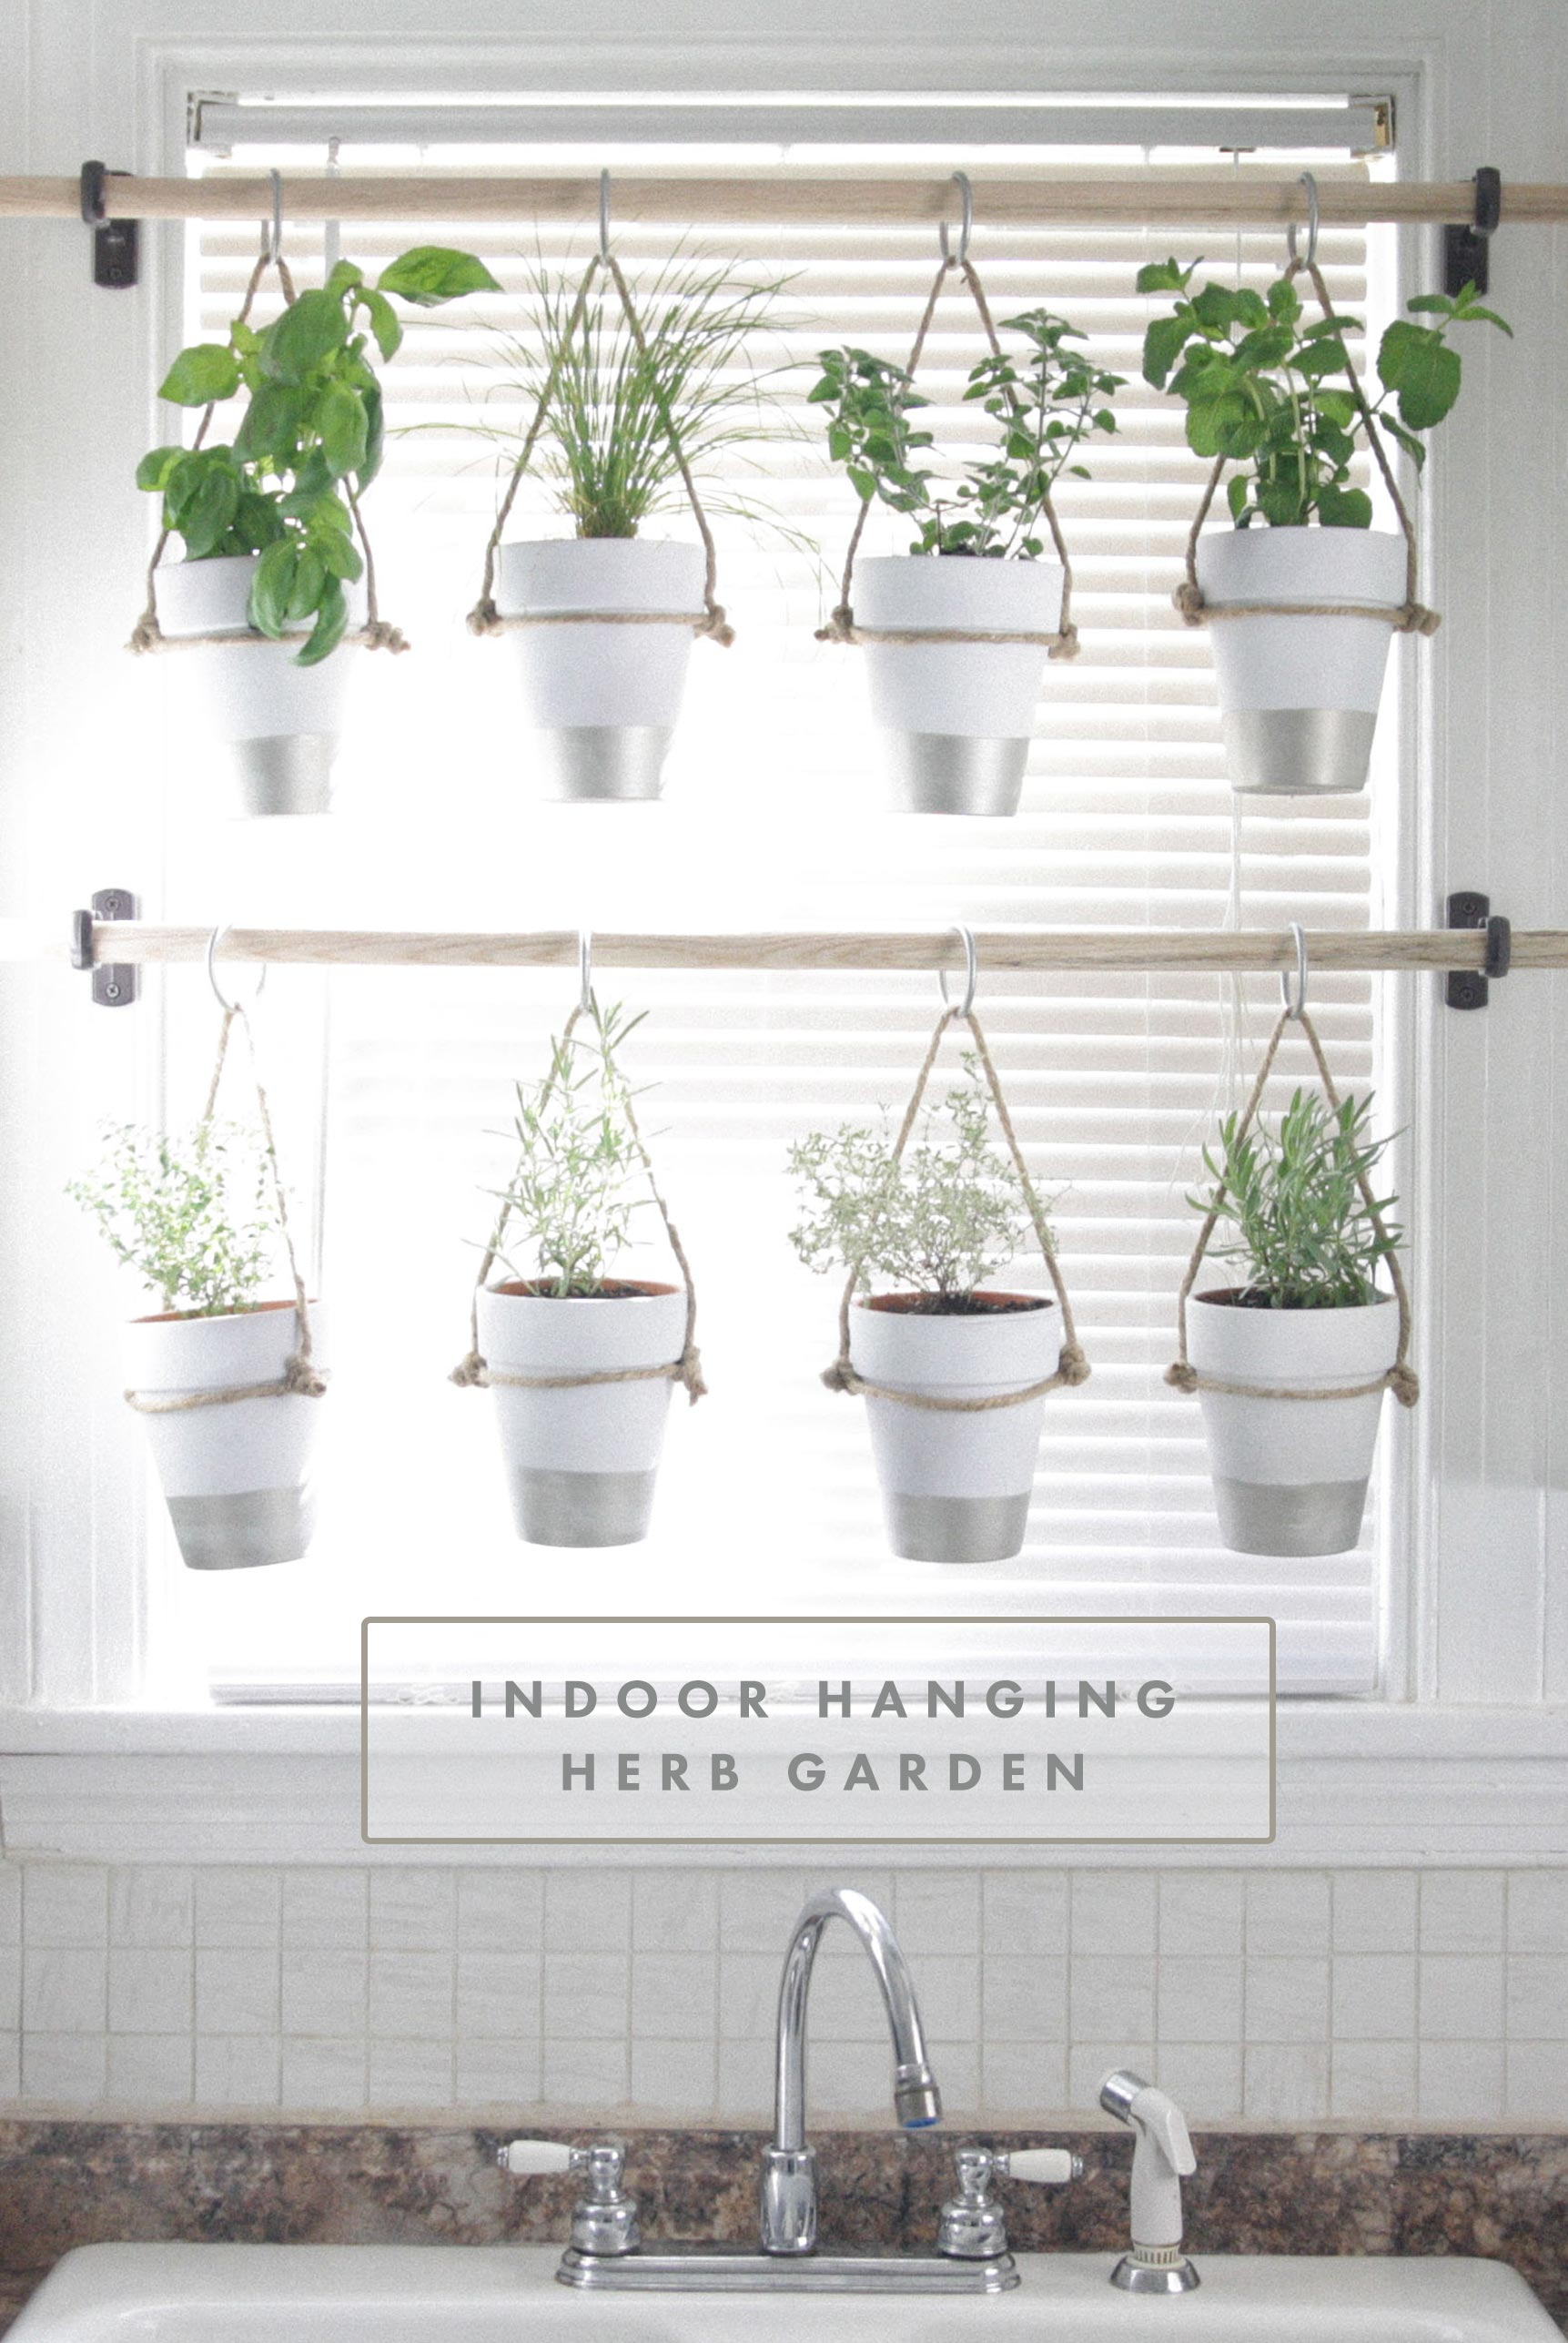 The Bird and Her Song - Indoor Hanging Herb Garden